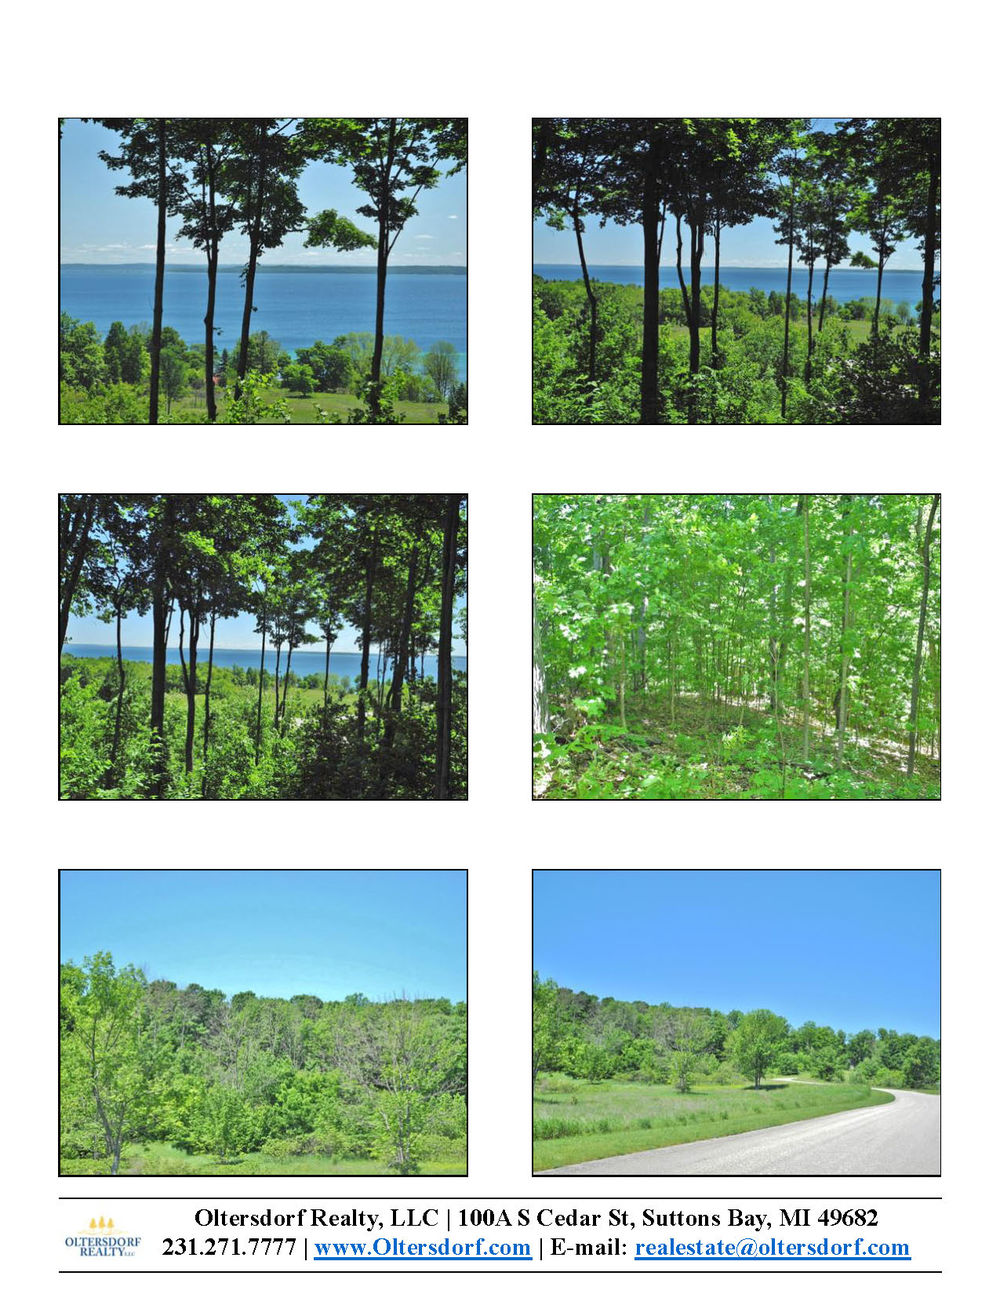 11638 E Belanger Woods Drive, Suttons Bay, MI, Leelanau County vacant land with water views of Grand traverse Bay, for sale by Oltersdorf Realty LLC, Leelanau County Realtors Vicky & Jonathan Oltersdorf marketing packet (1).jpg